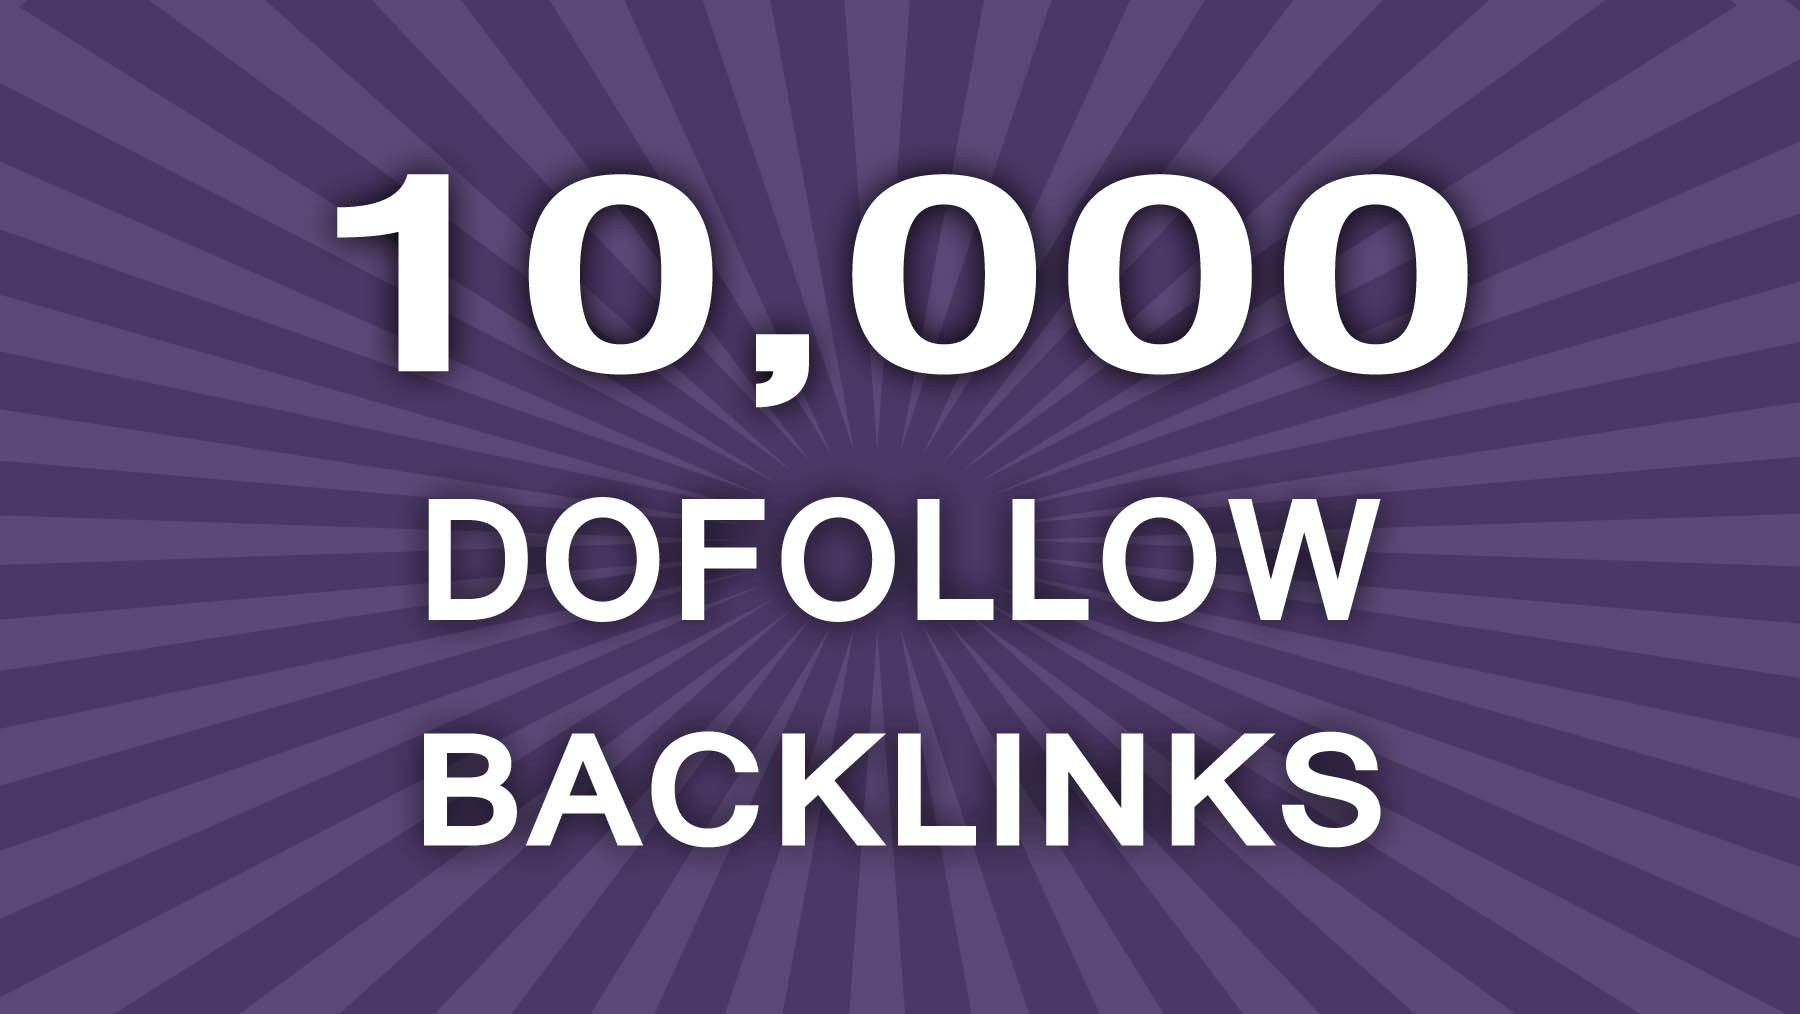 Rank High Like a Pro with 10,000 DoFollow SEO Friendl...